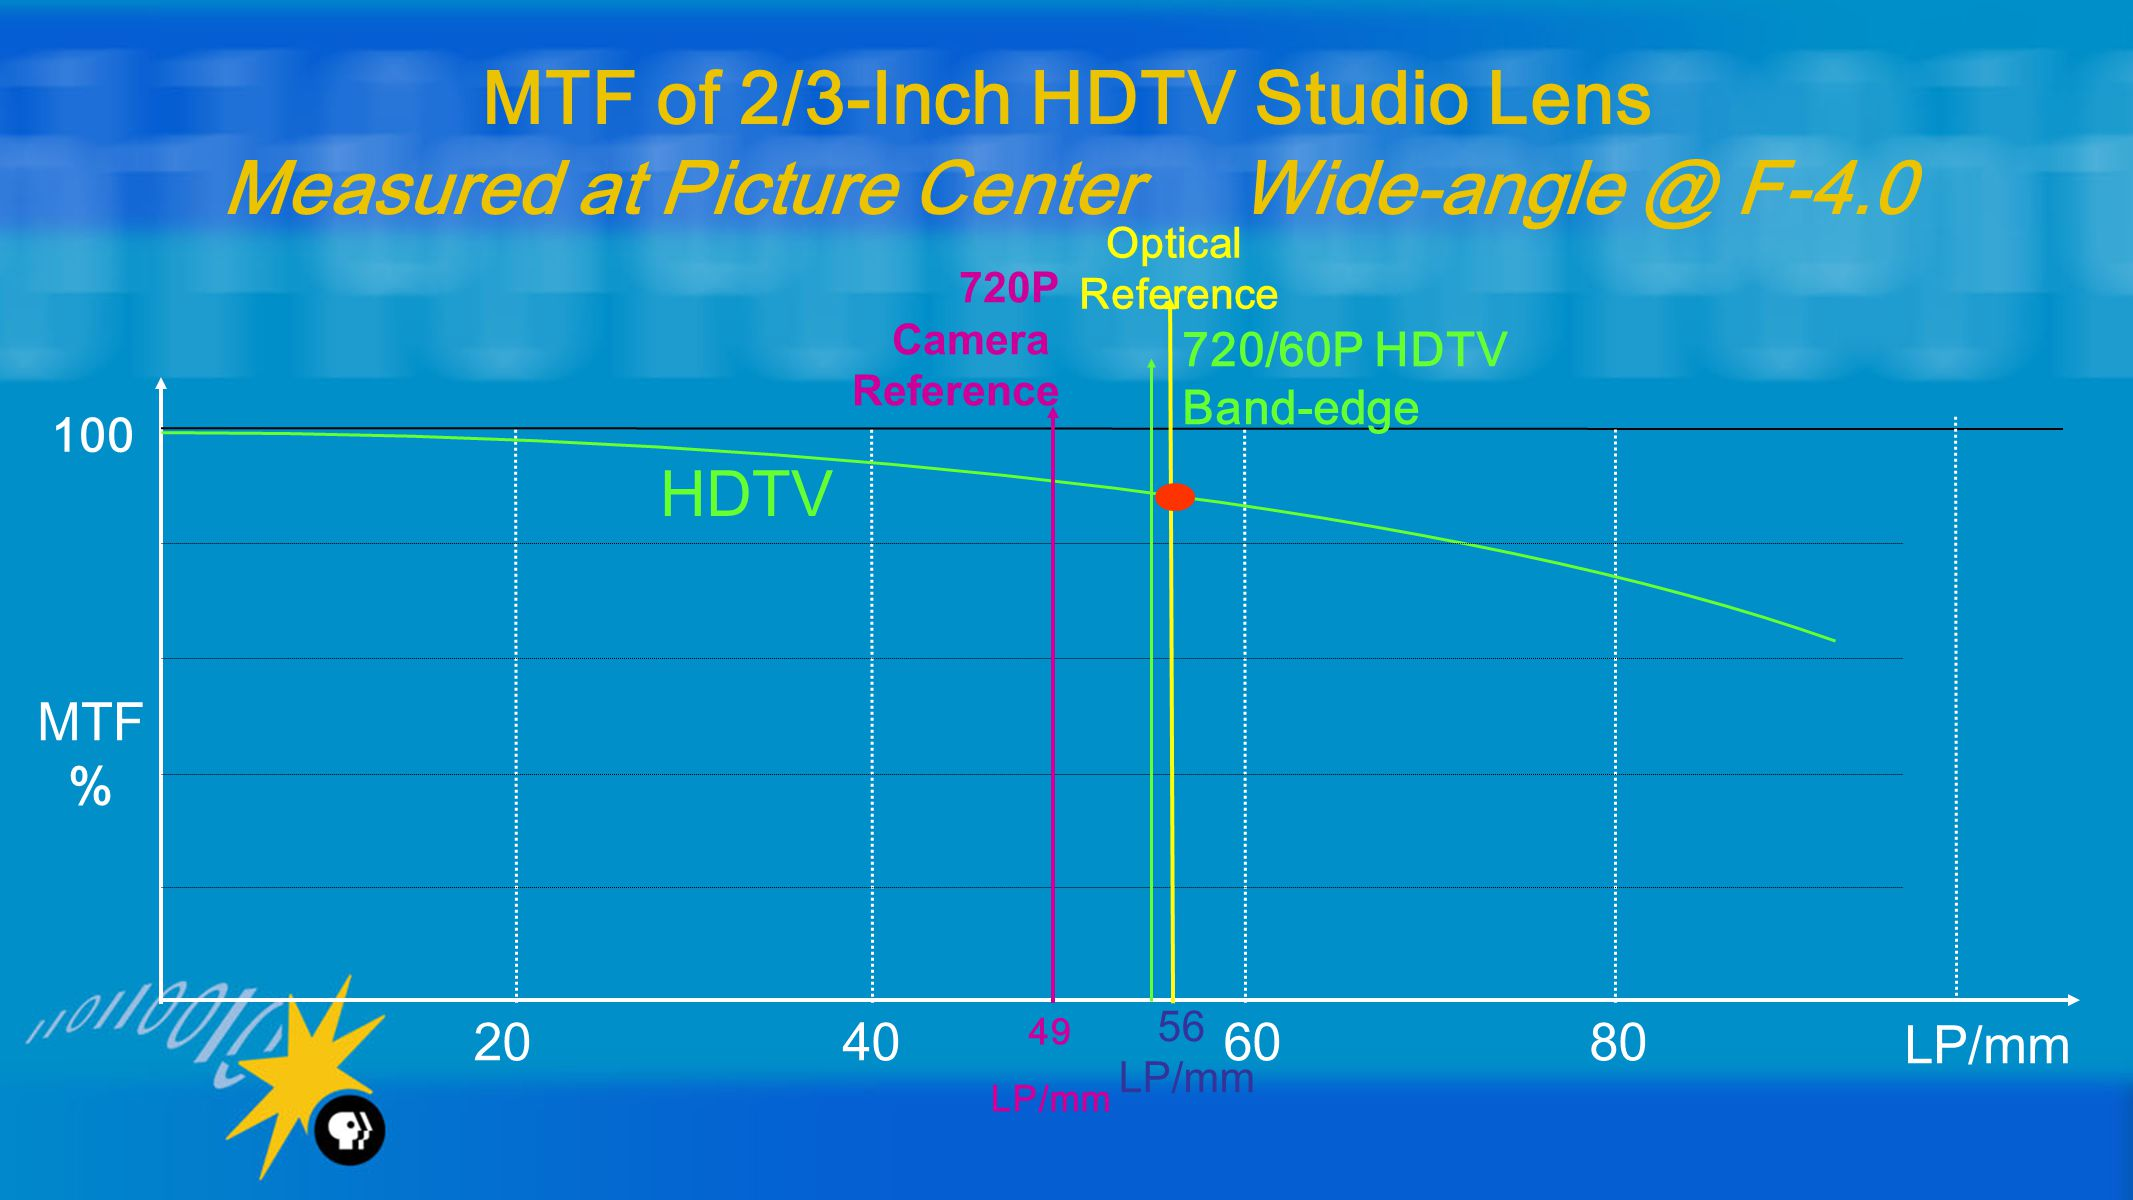 20 40 60 80 LP/mm 100 MTF % MTF of 2/3-Inch HDTV Studio Lens Measured at Picture Center Wide-angle @ F-4.0 HDTV 56 LP/mm 720/60P HDTV Band-edge Optical Reference 720P Camera Reference 49 LP/mm